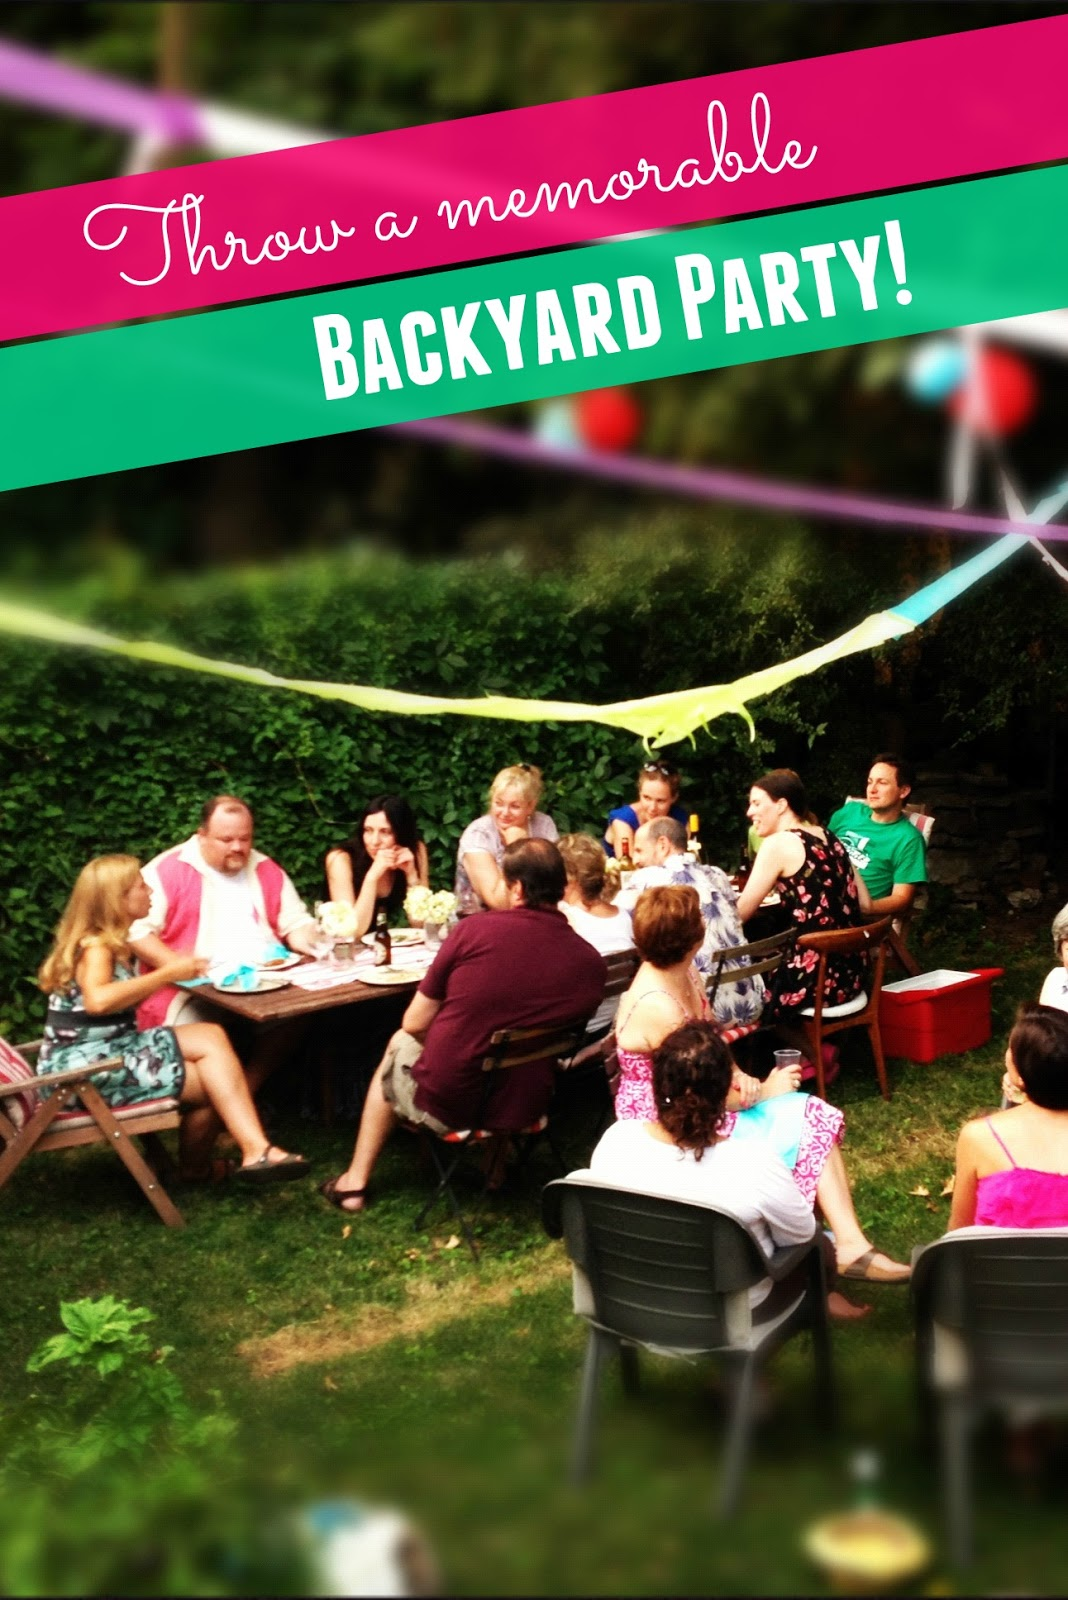 Thanks Mail Carrier Tips For Throwing The Best Backyard Party